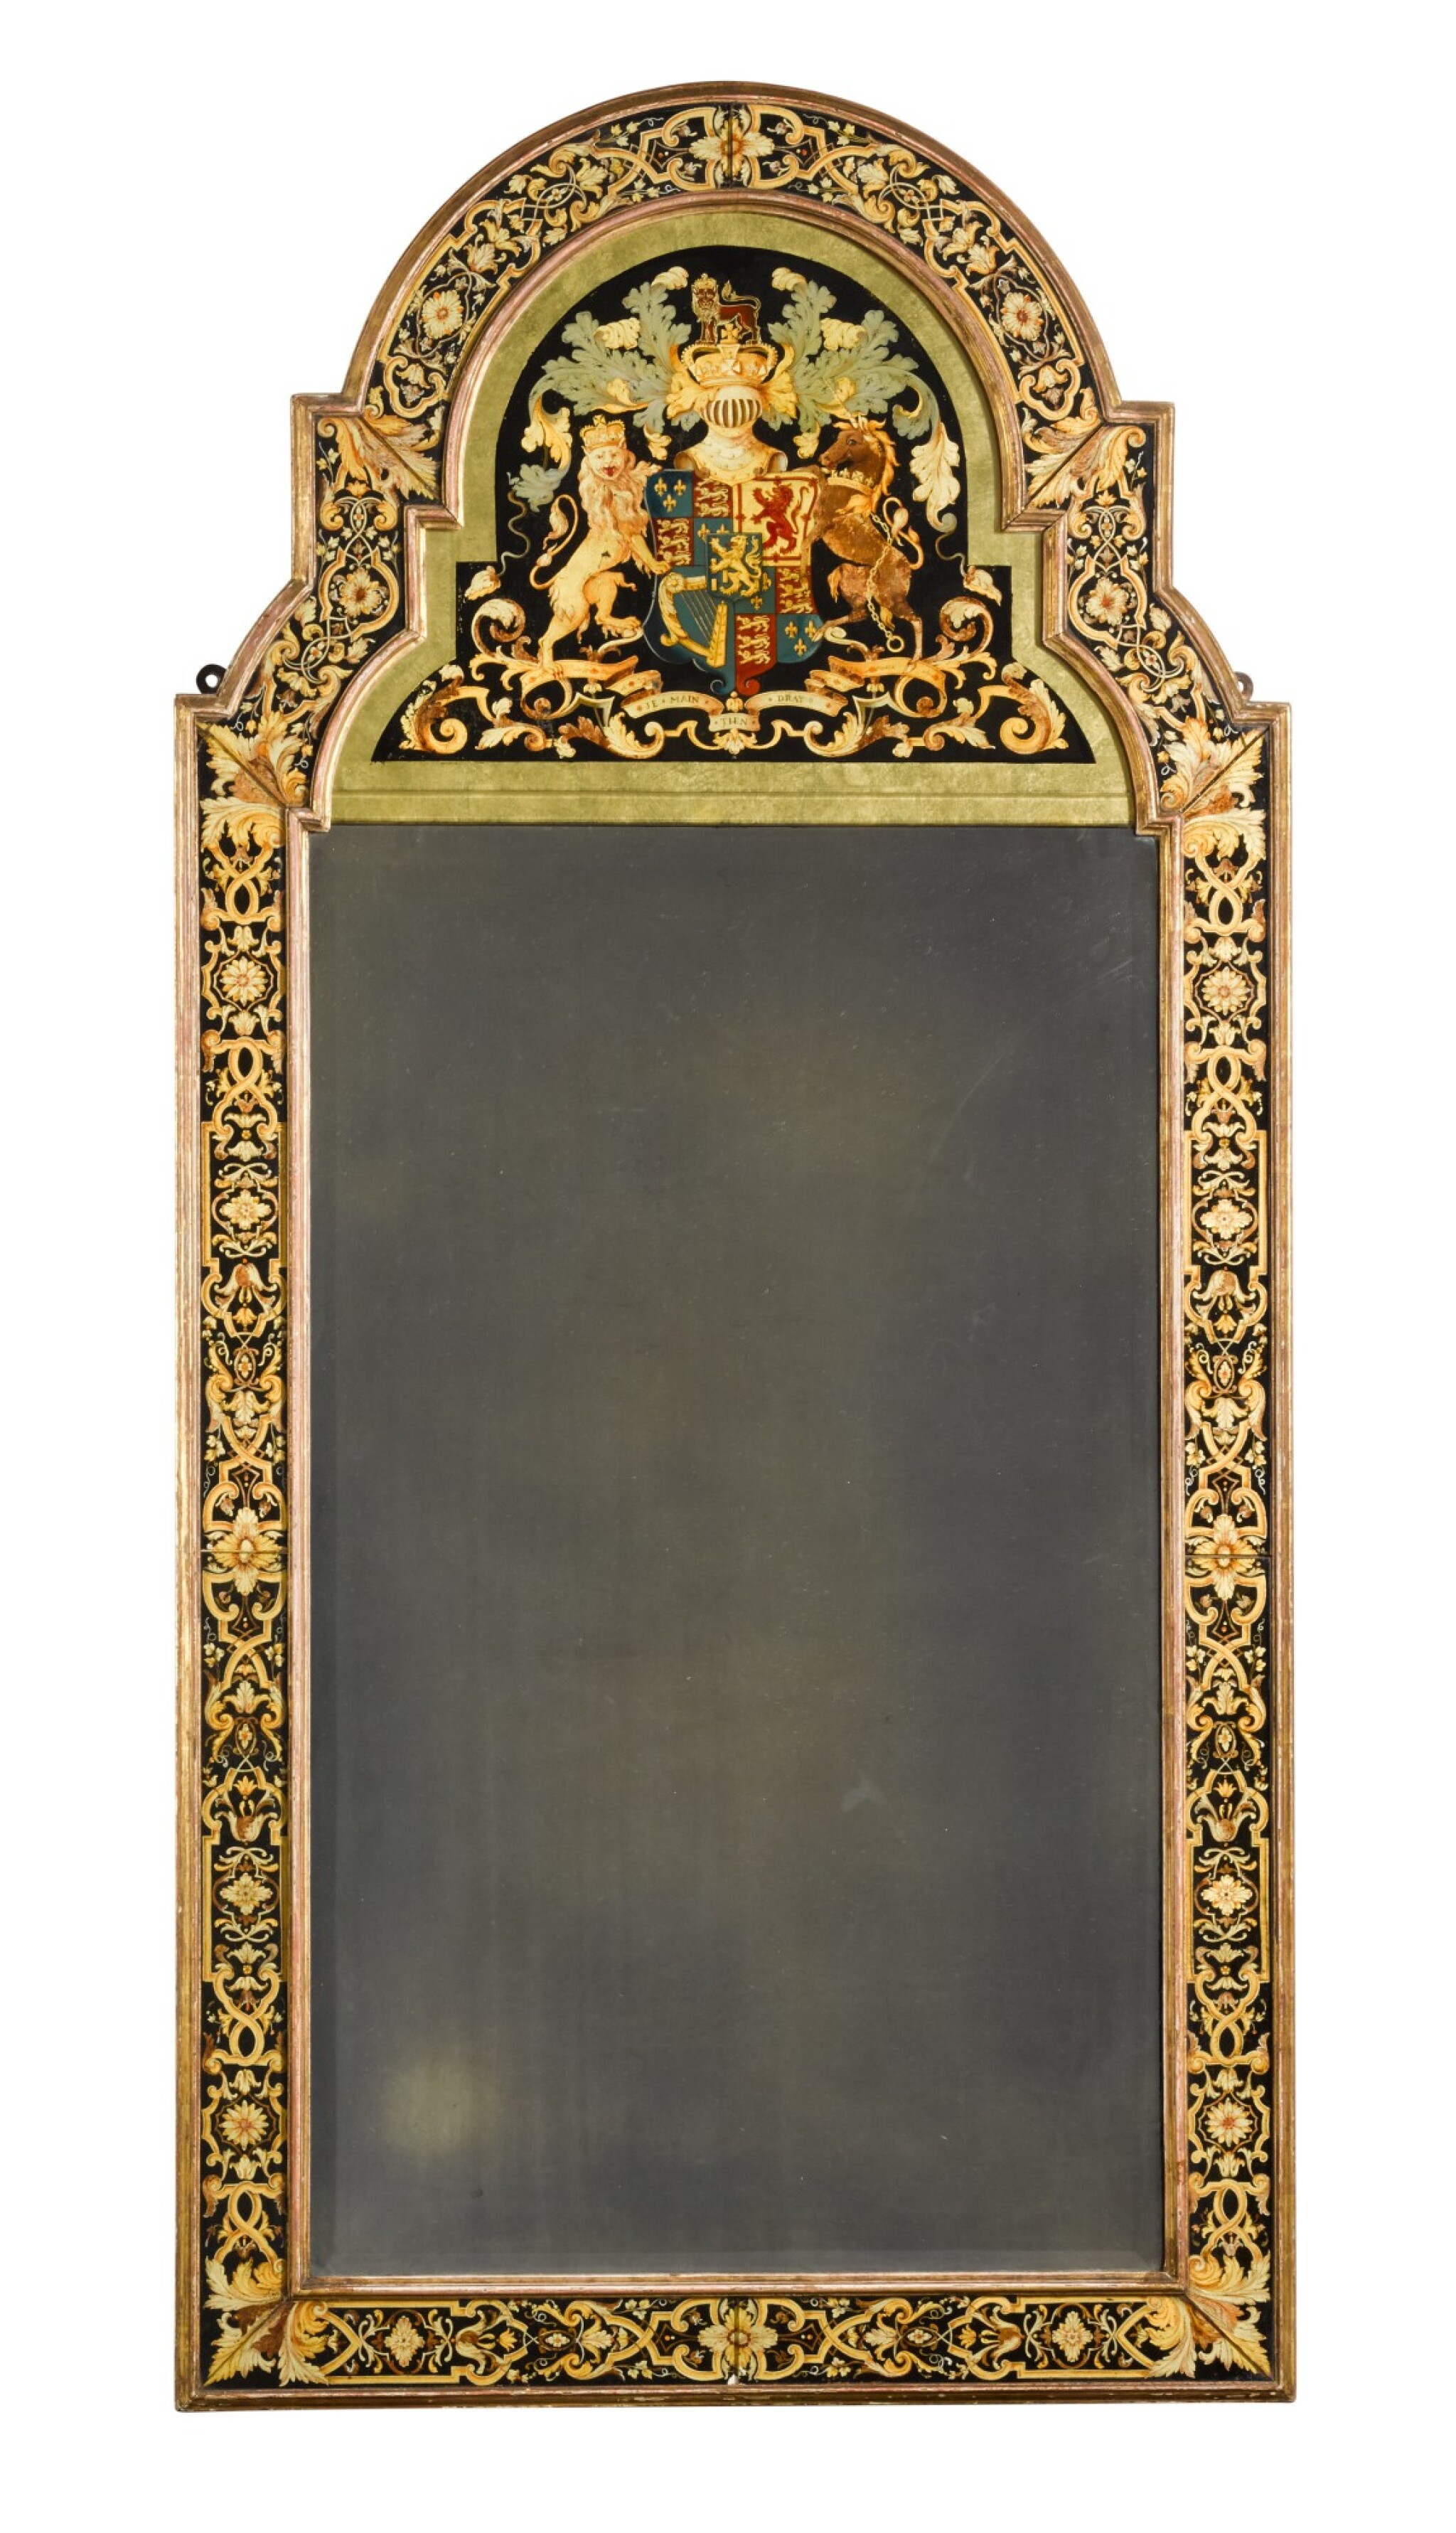 View full screen - View 1 of Lot 40. A William III style polychrome and gilt verre eglomisé armorial marginal pier mirror, early 20th century.